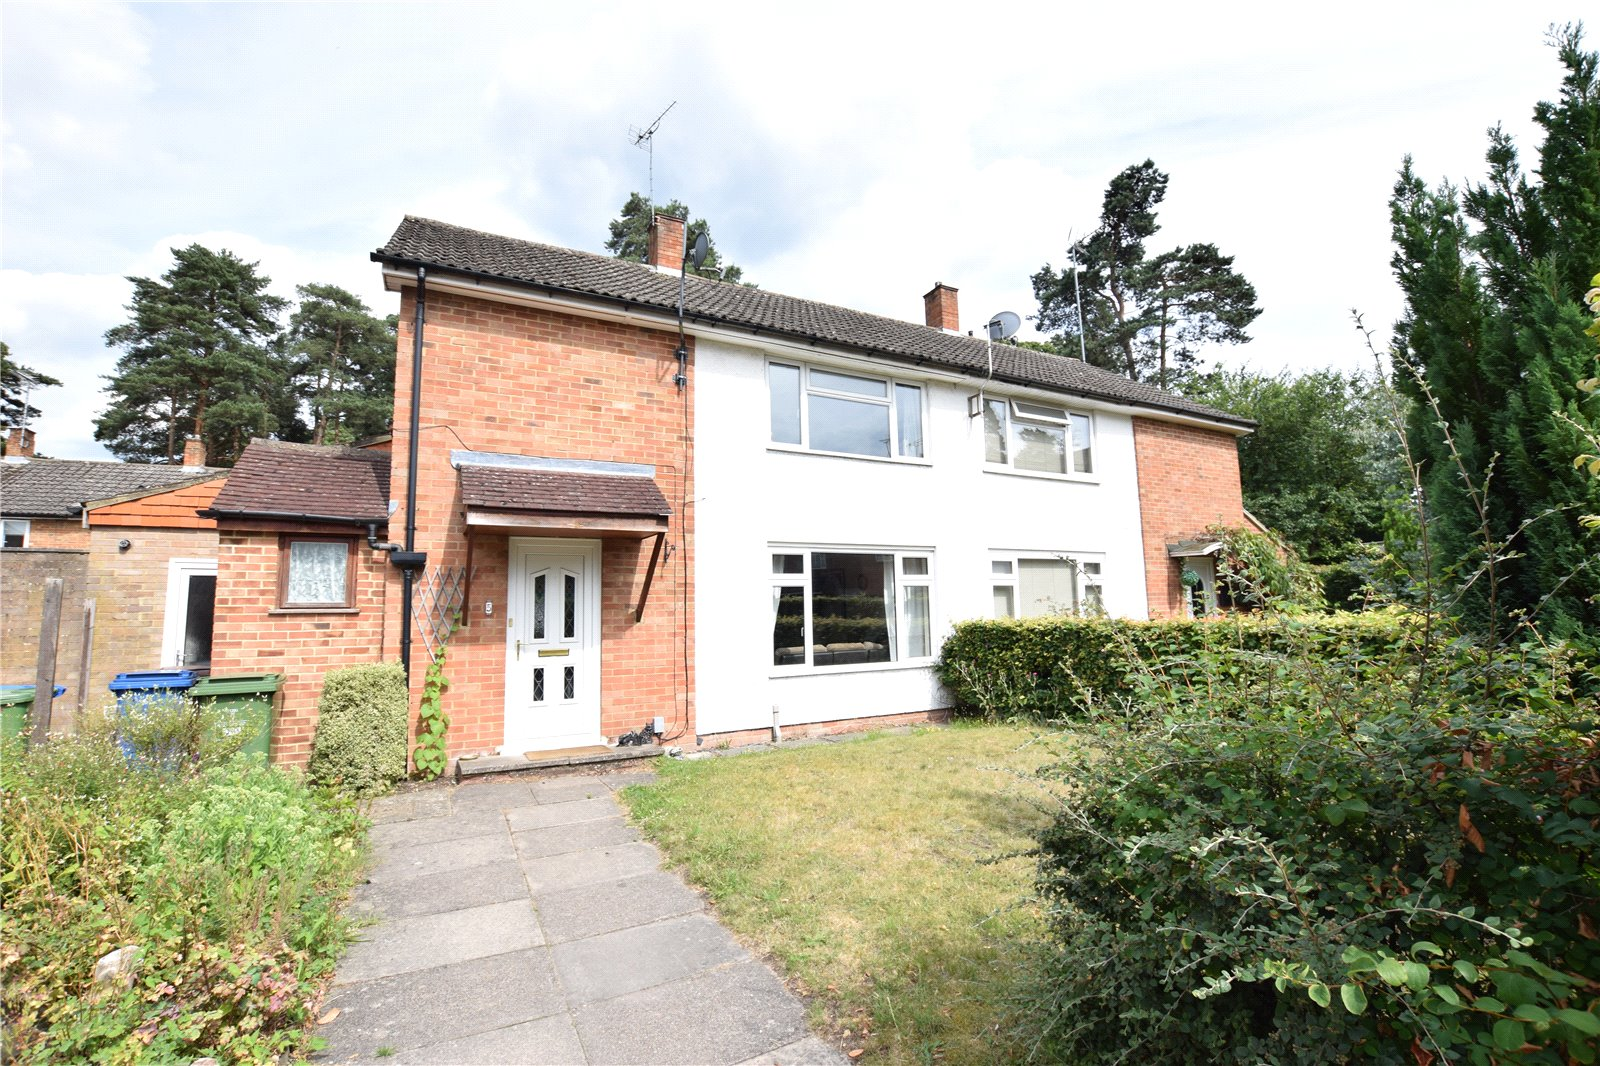 3 Bedrooms Semi Detached House for sale in Wilberforce Way, Bracknell, Berkshire, RG12